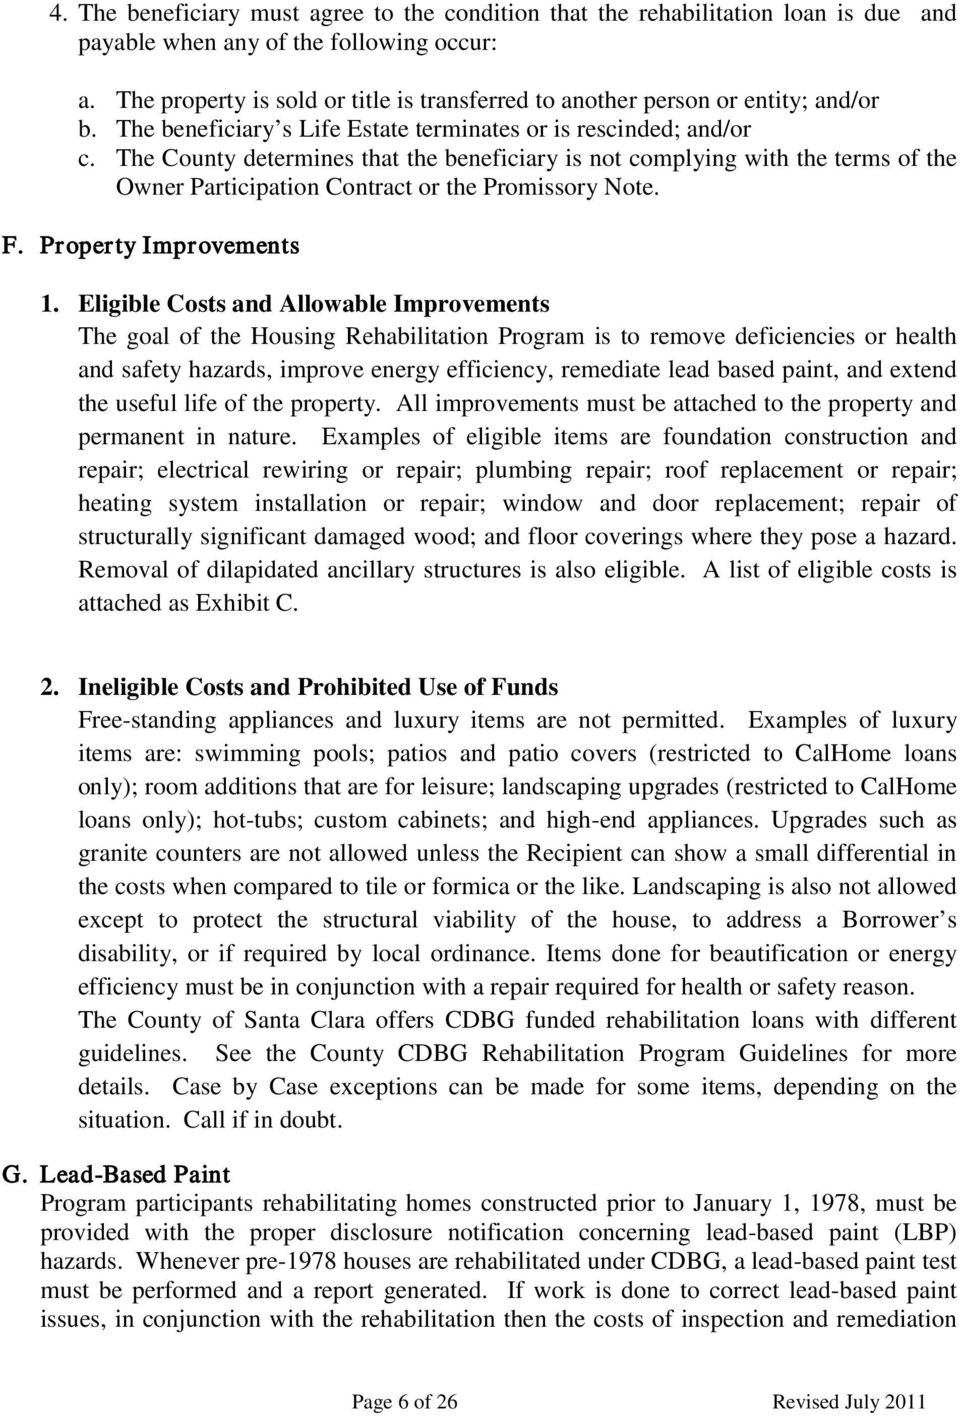 The County determines that the beneficiary is not complying with the terms of the Owner Participation Contract or the Promissory Note. F. Property Improvements 1.